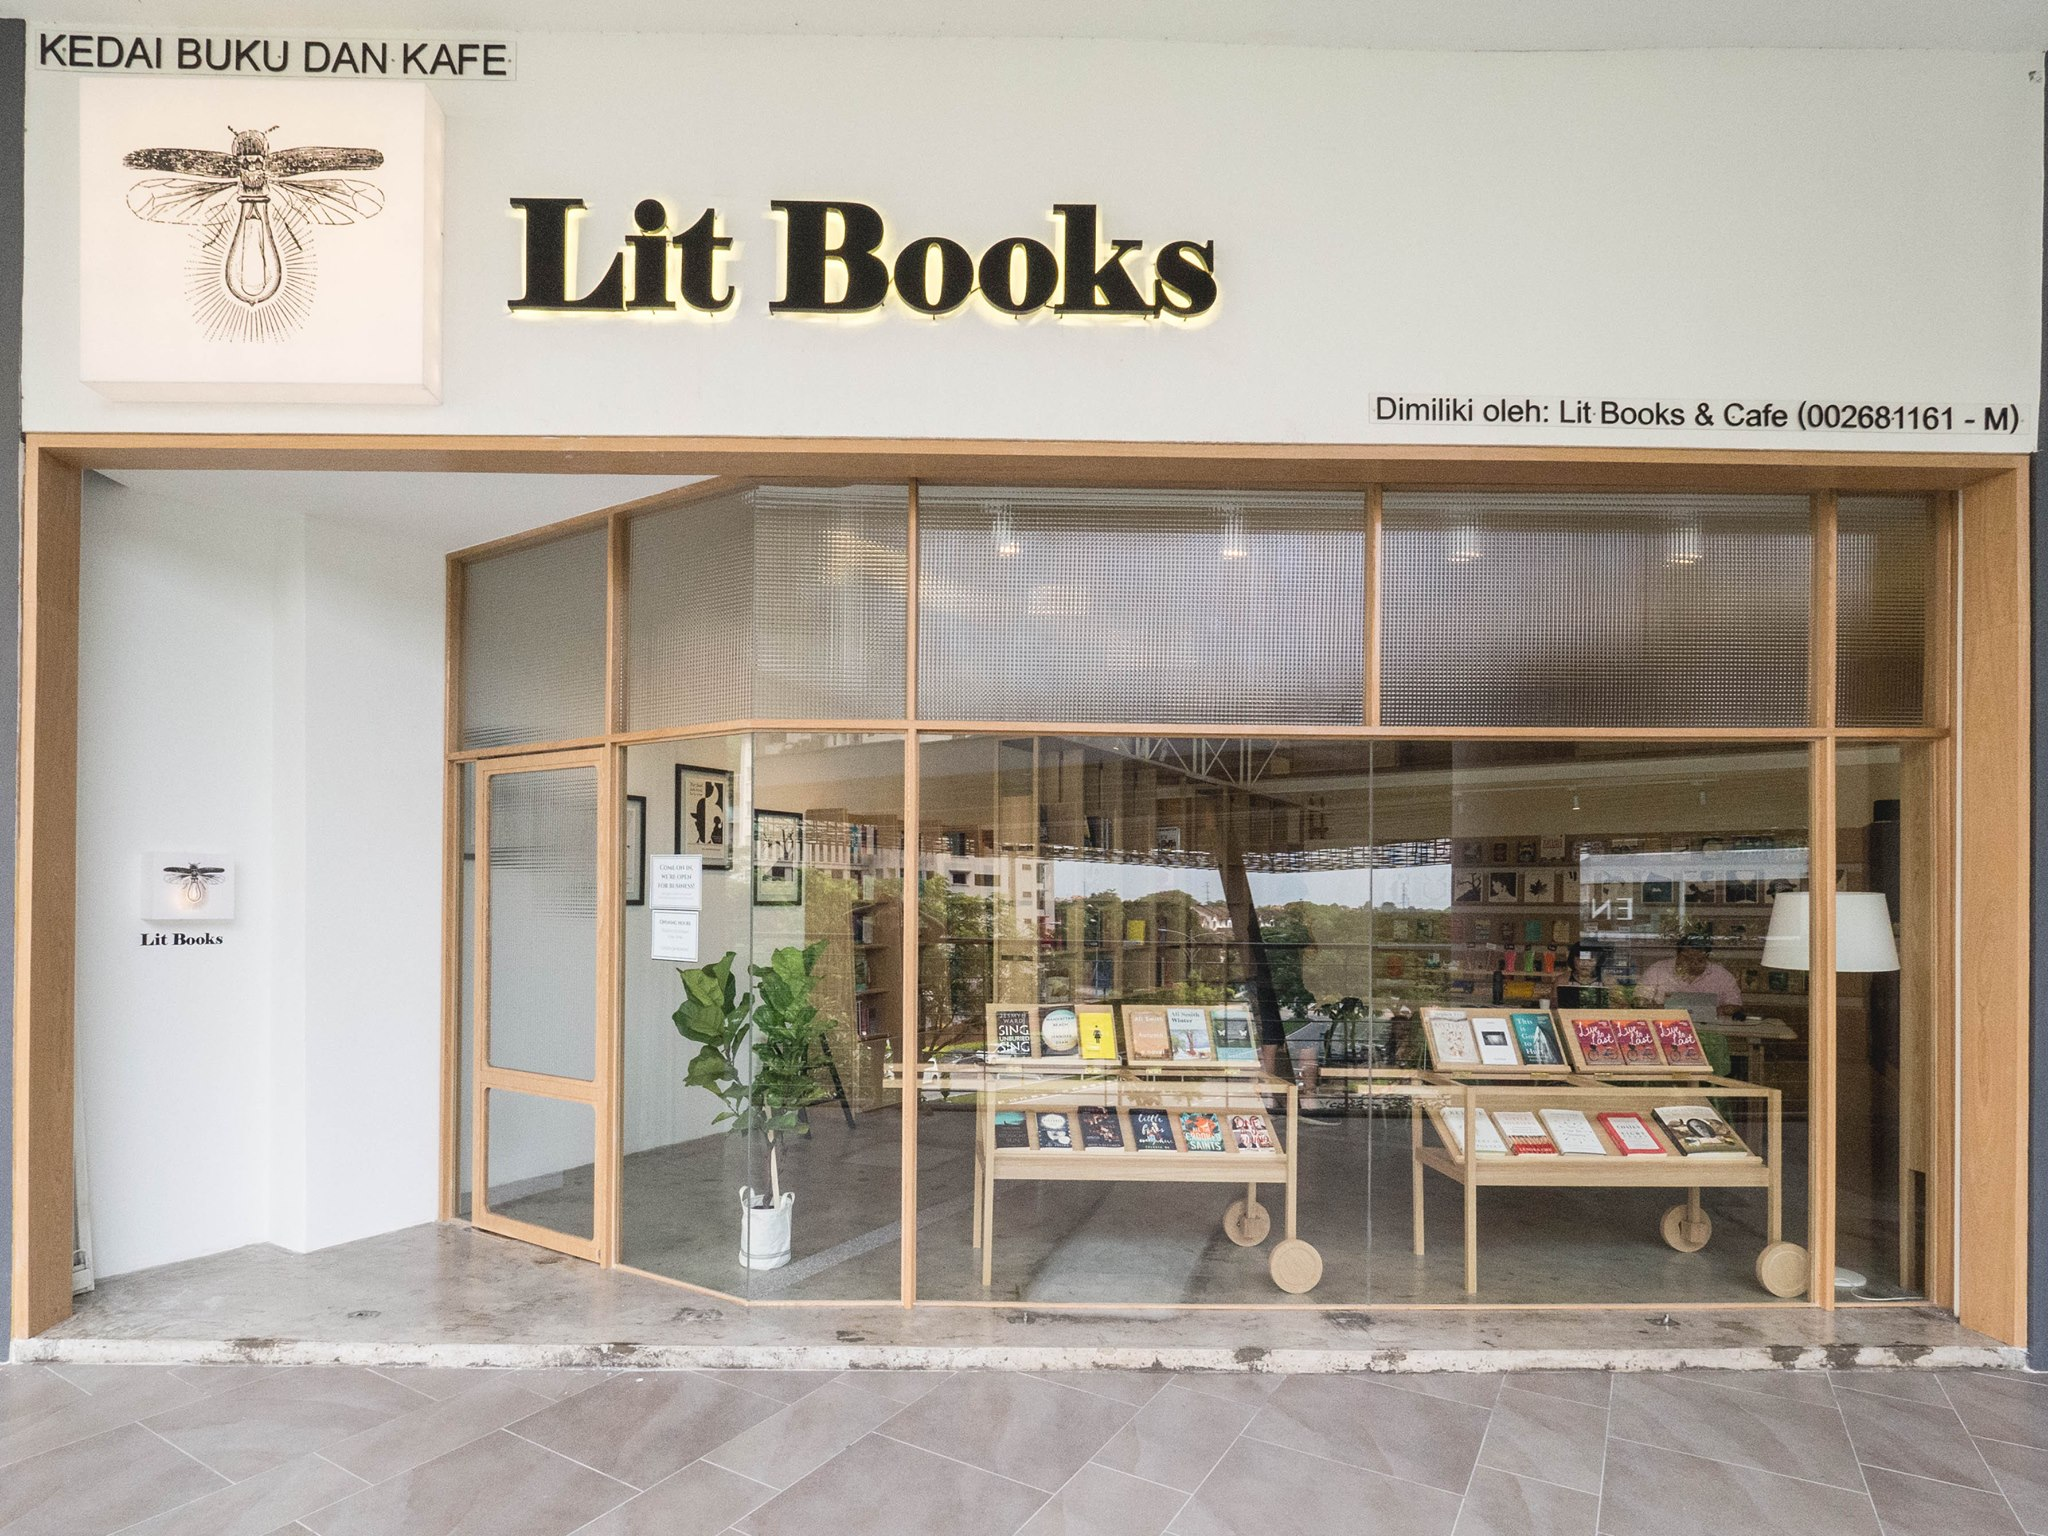 Store view of Lit Books